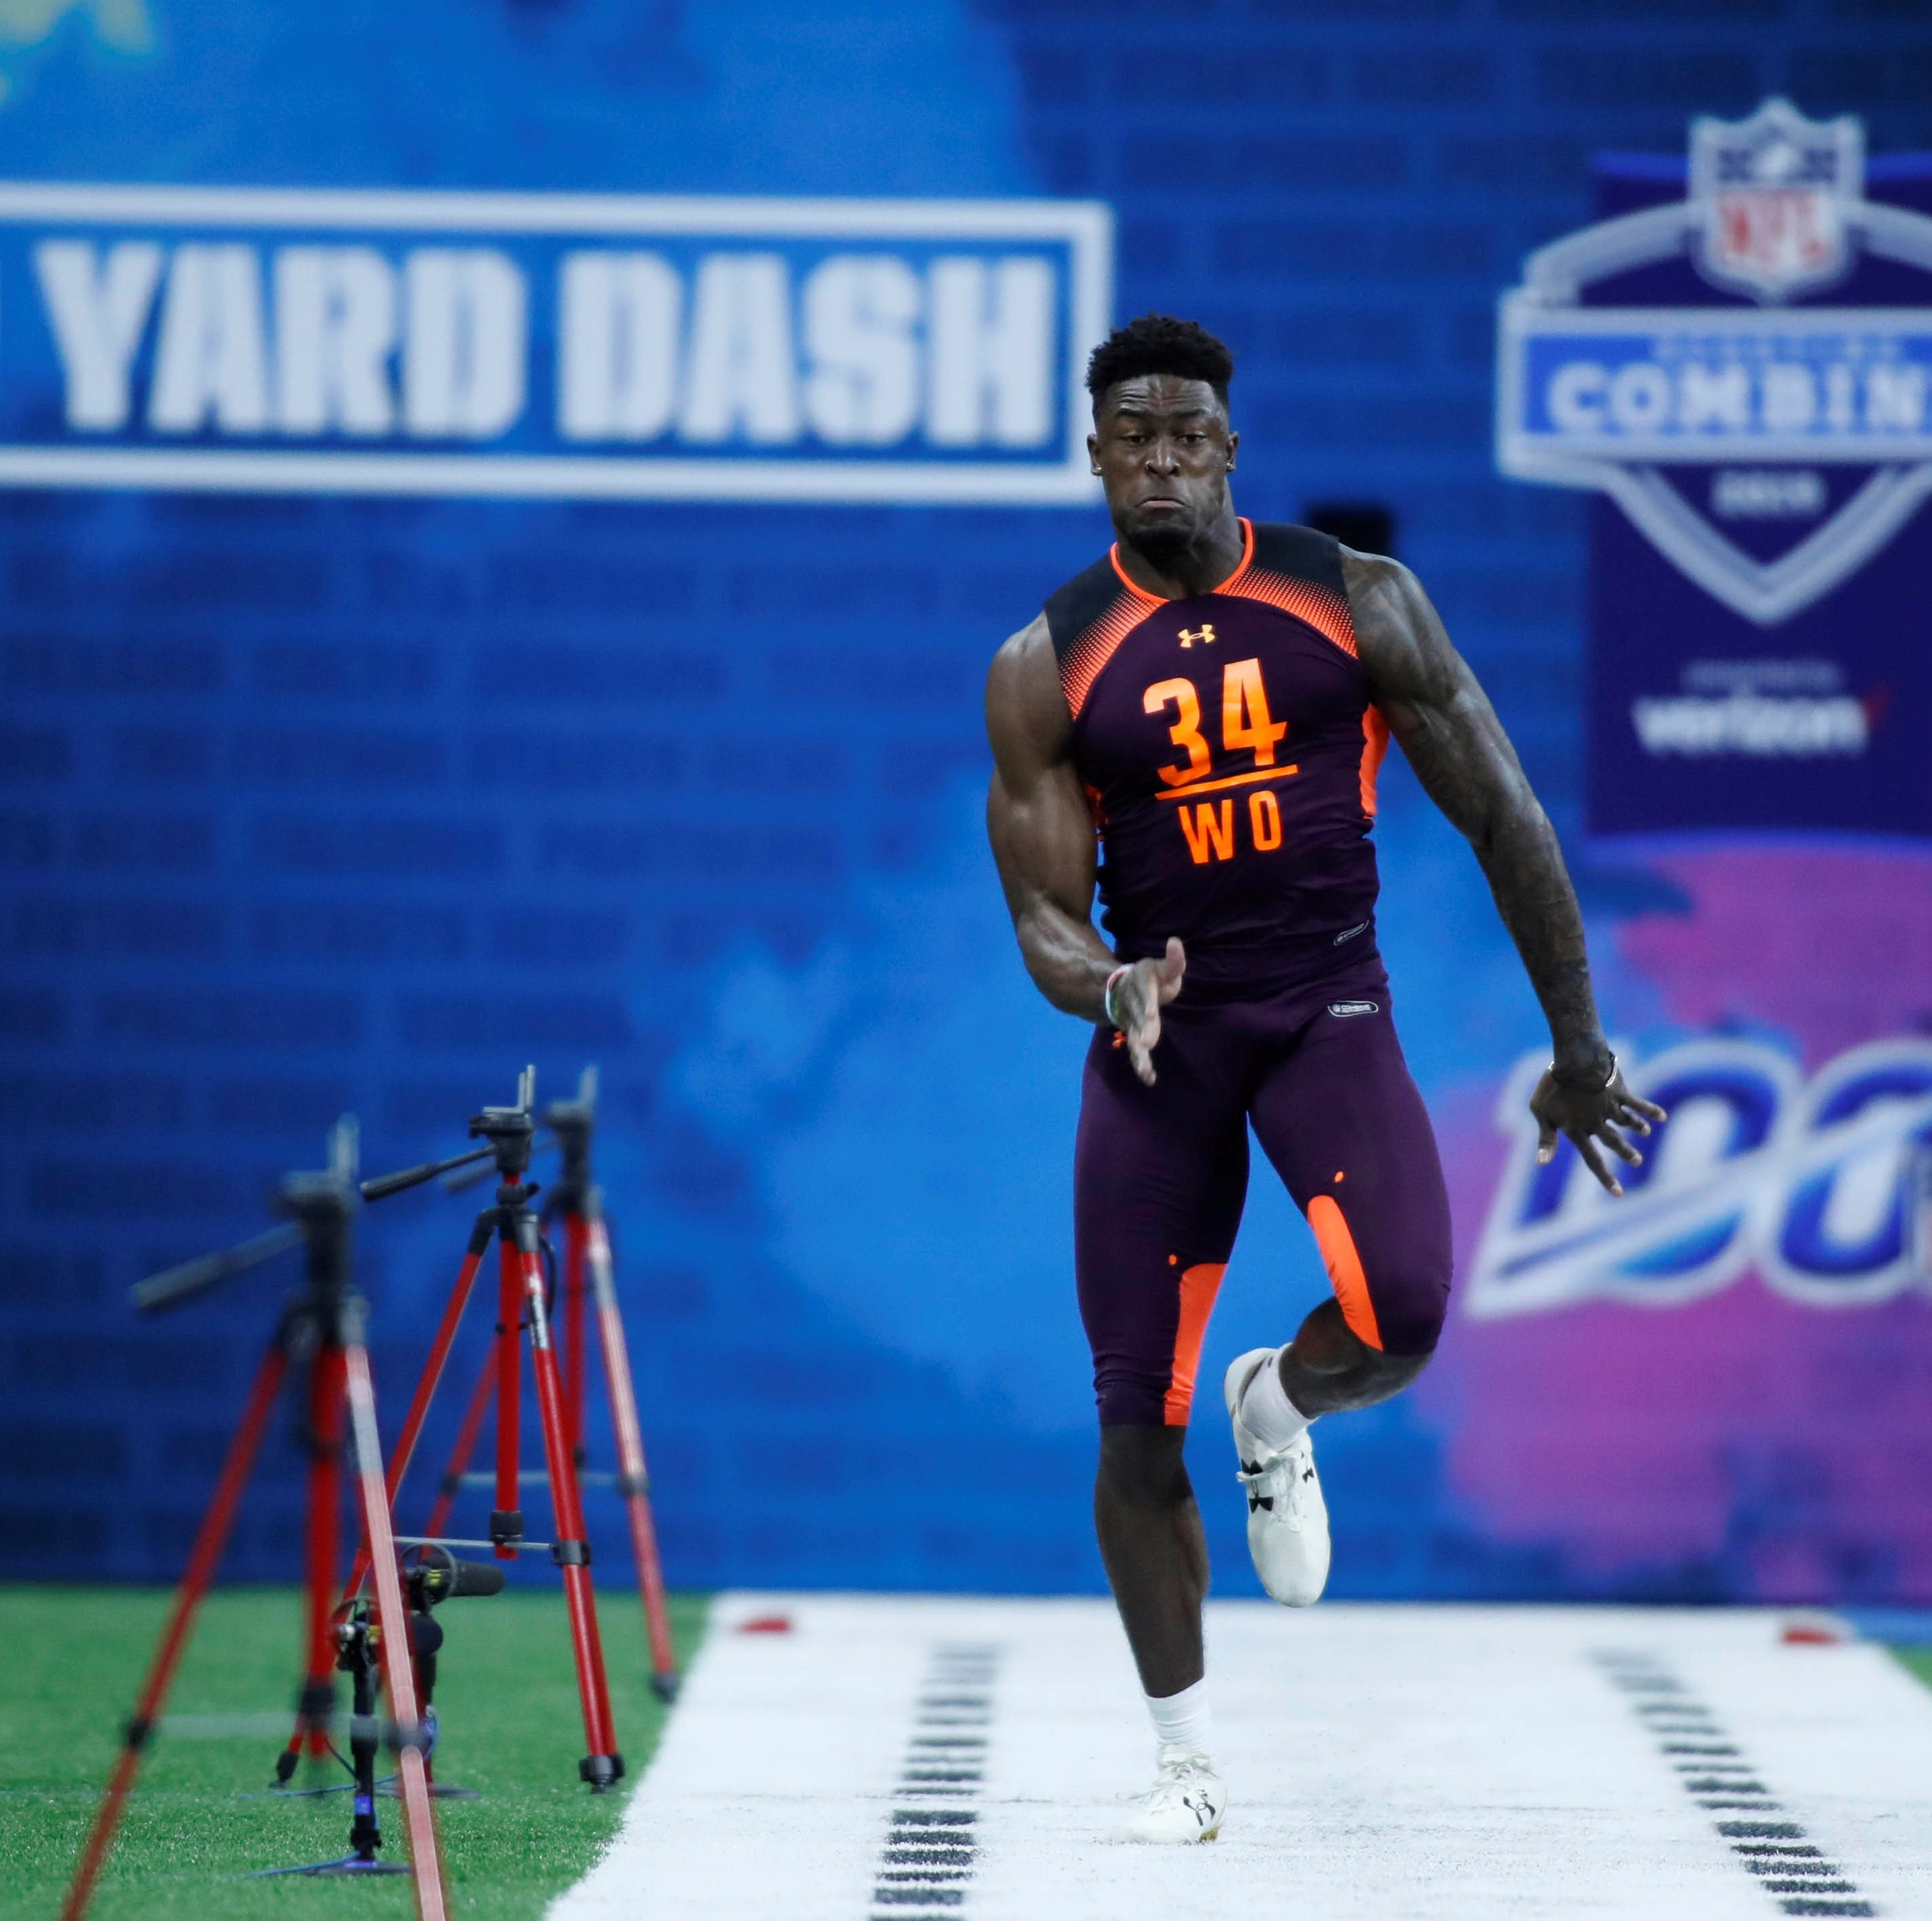 Rebels' Metcalf makes strong case for being best receiver in NFL Draft